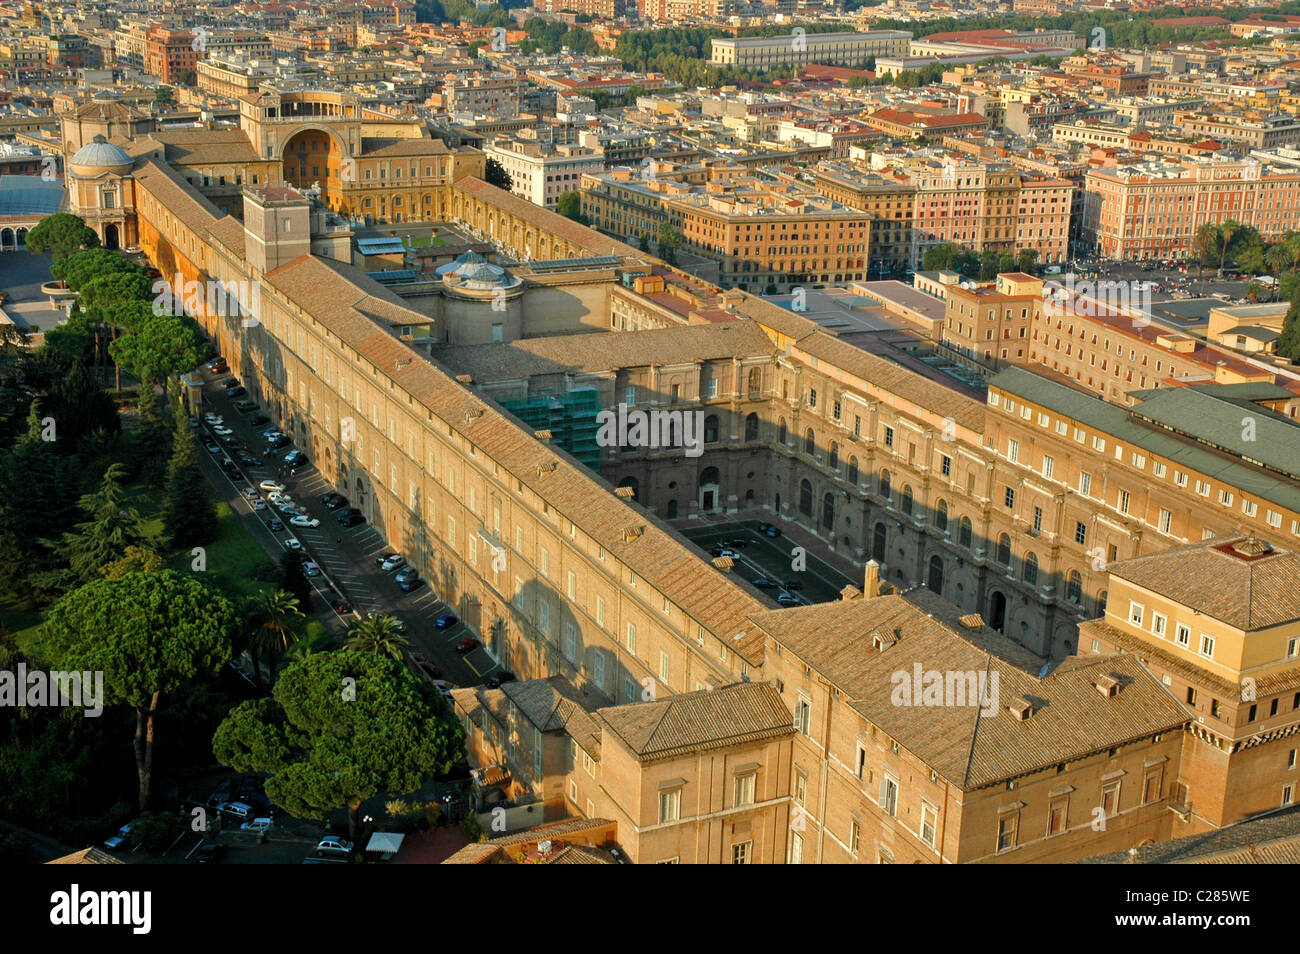 aerial view of Rome,Italy,Europe - Stock Image